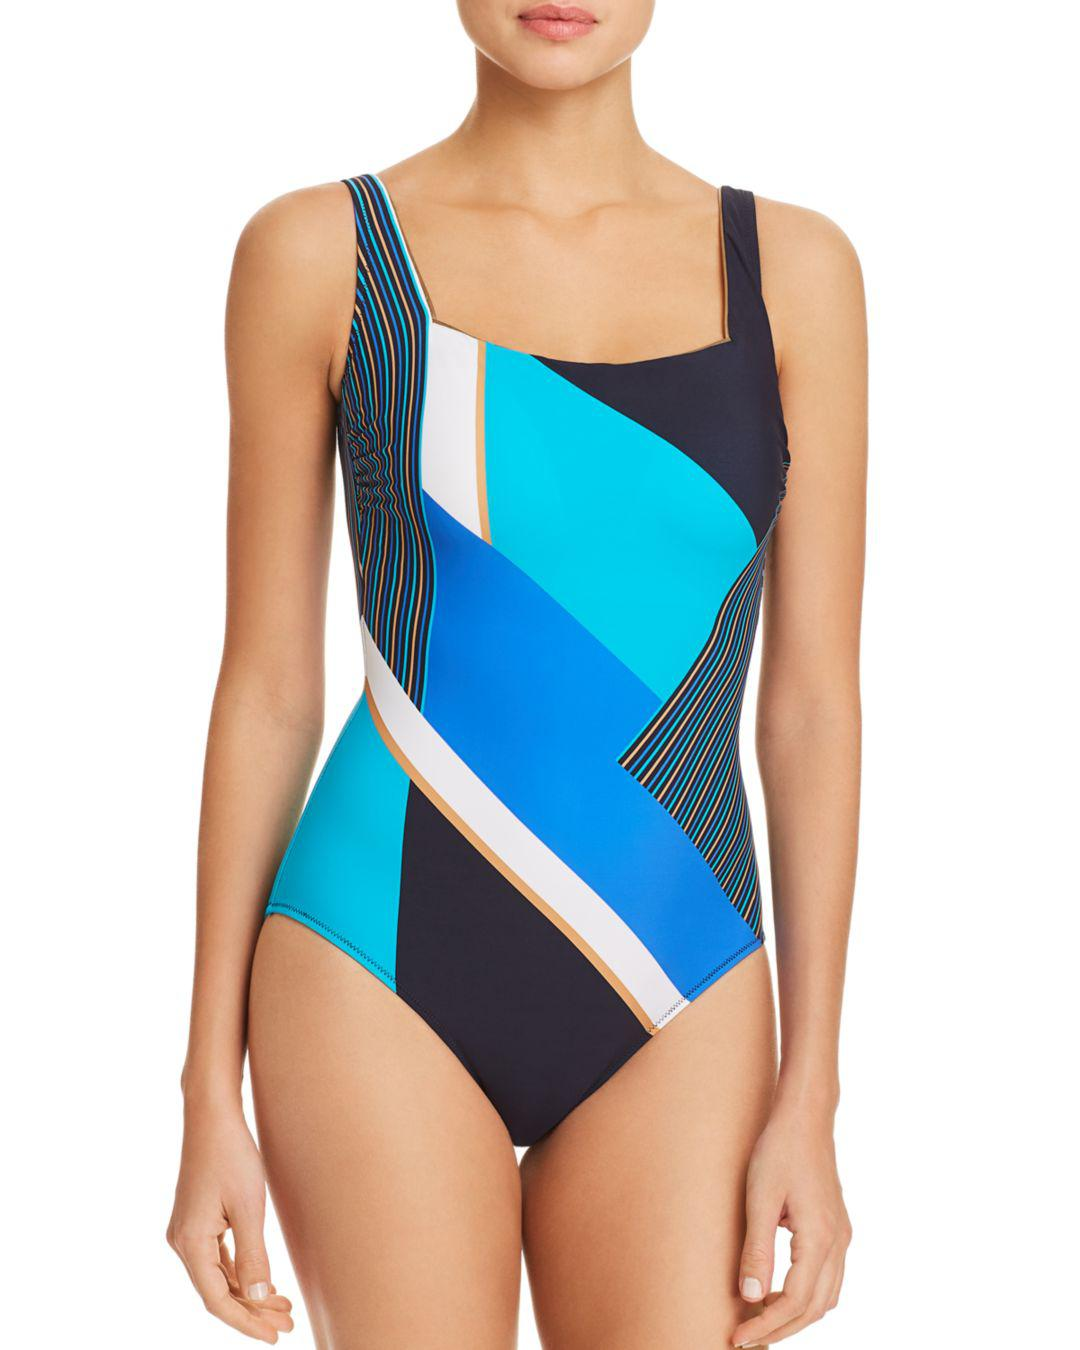 57a315d15b912 Gottex Maritime Square Neck One Piece Swimsuit in Blue - Lyst